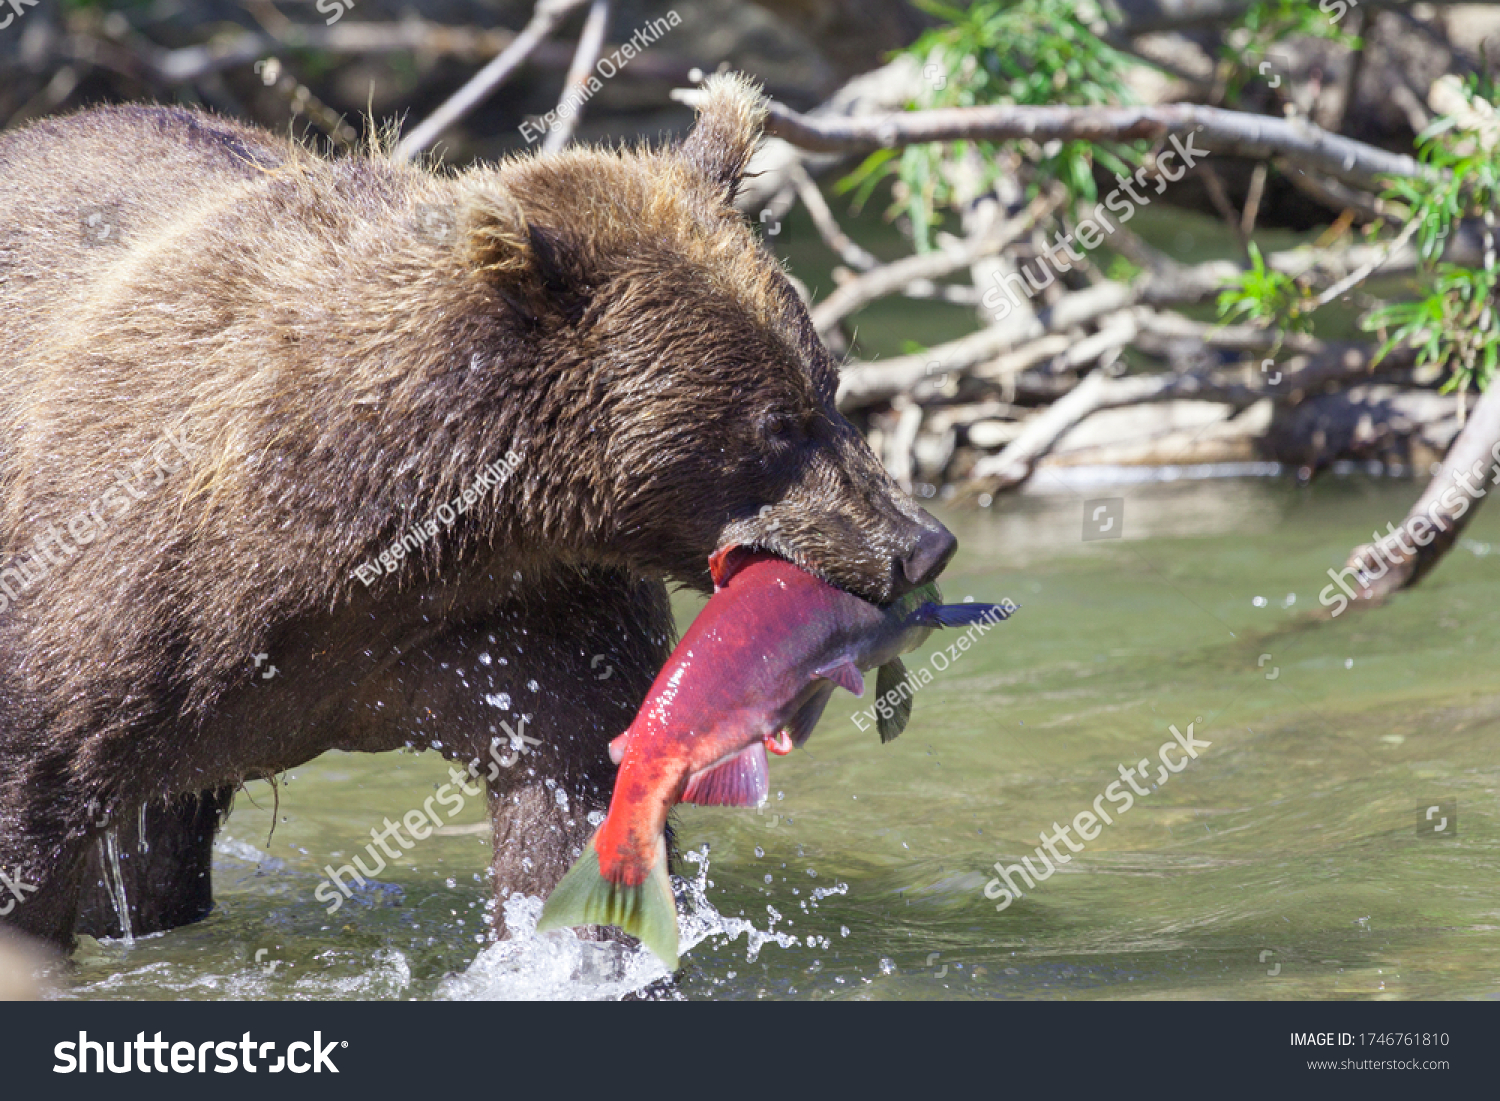 Face of a wild bear with fish close-up. The concept of bears hunting salmon during spawning.